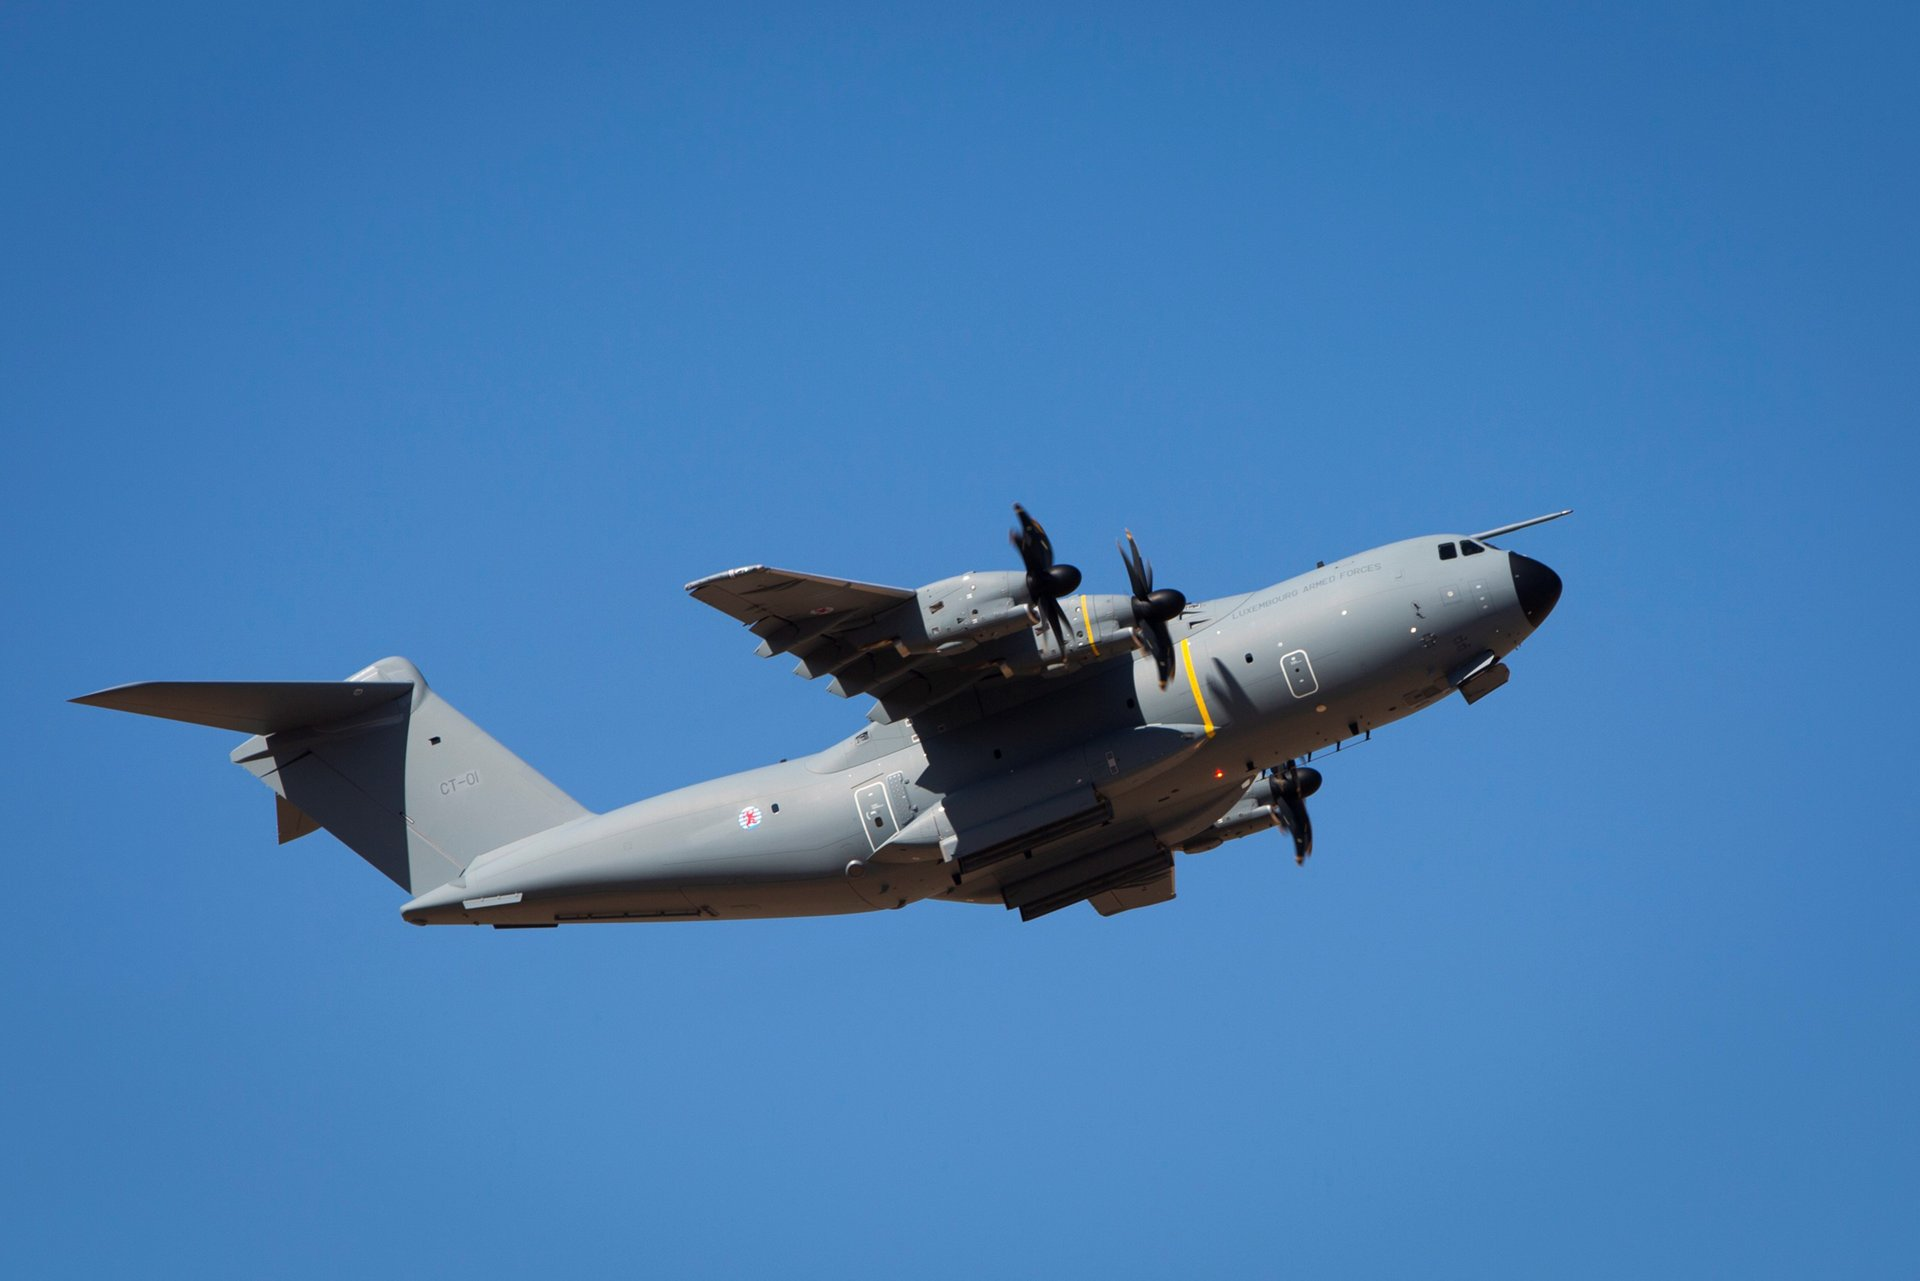 The Luxembourg Armed Forces have taken delivery of its Airbus A400M military transport aircraft, which was accepted at the A400M Final Assembly Line in Seville (Spain) and has performed a ferry flight.